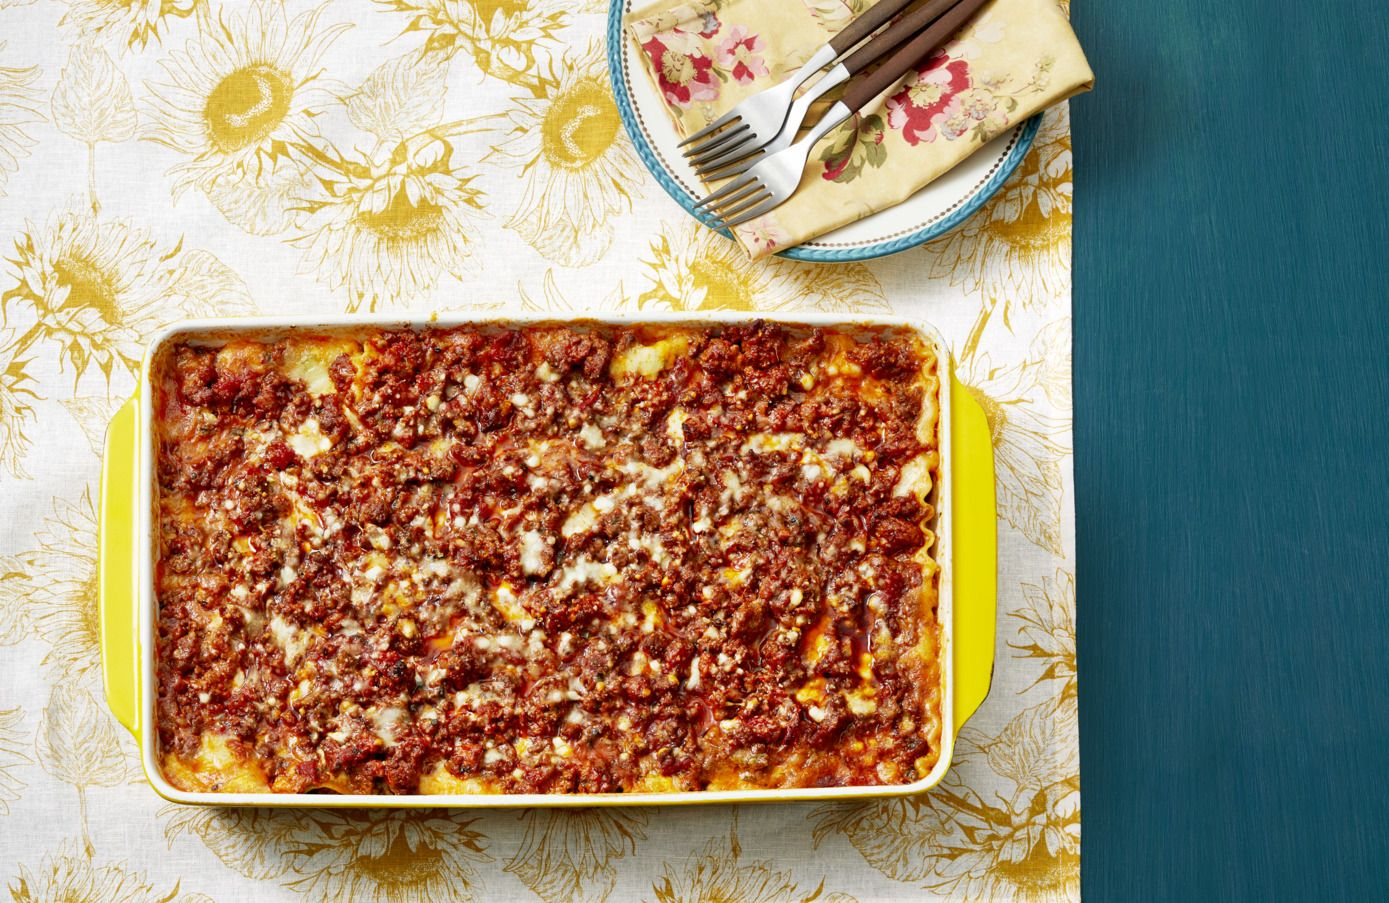 Best Lasagna Recipe   How to Make Lasagna From Scratch